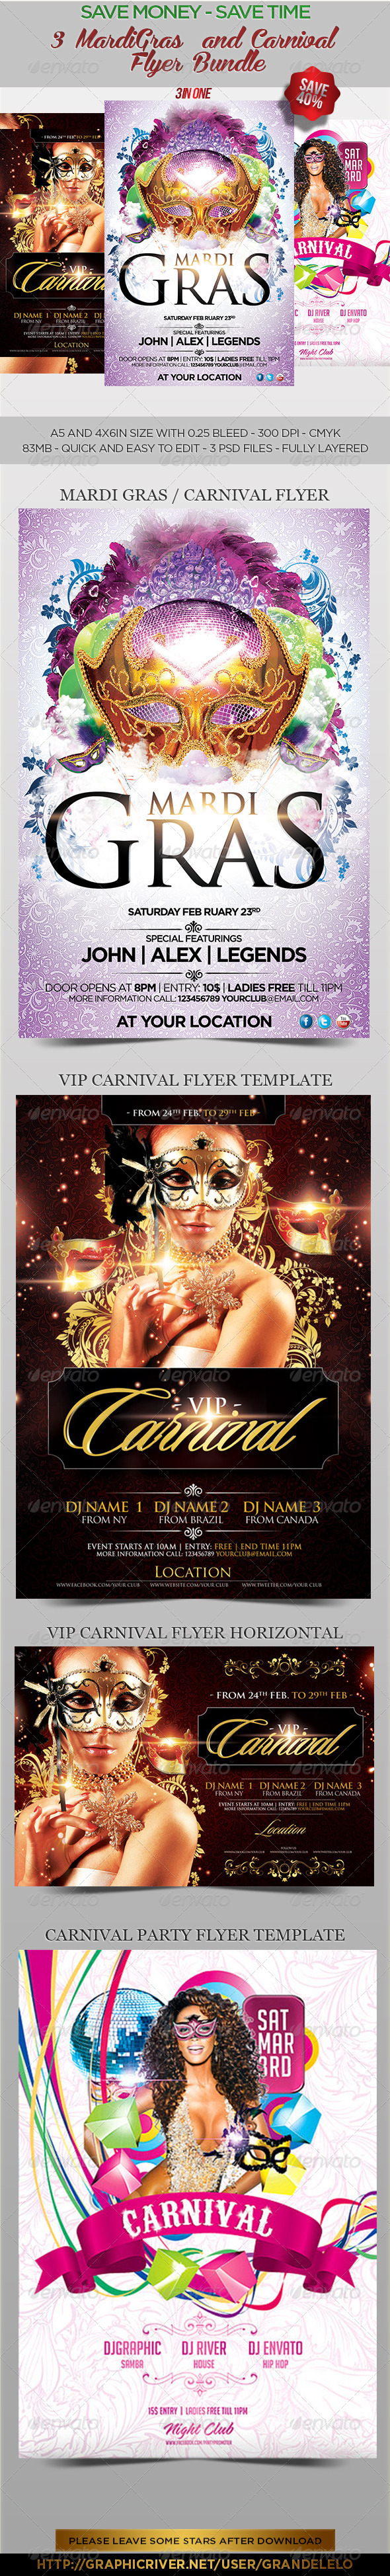 GraphicRiver 3 MardiGras n Carnival Flyer Bundle 6598628